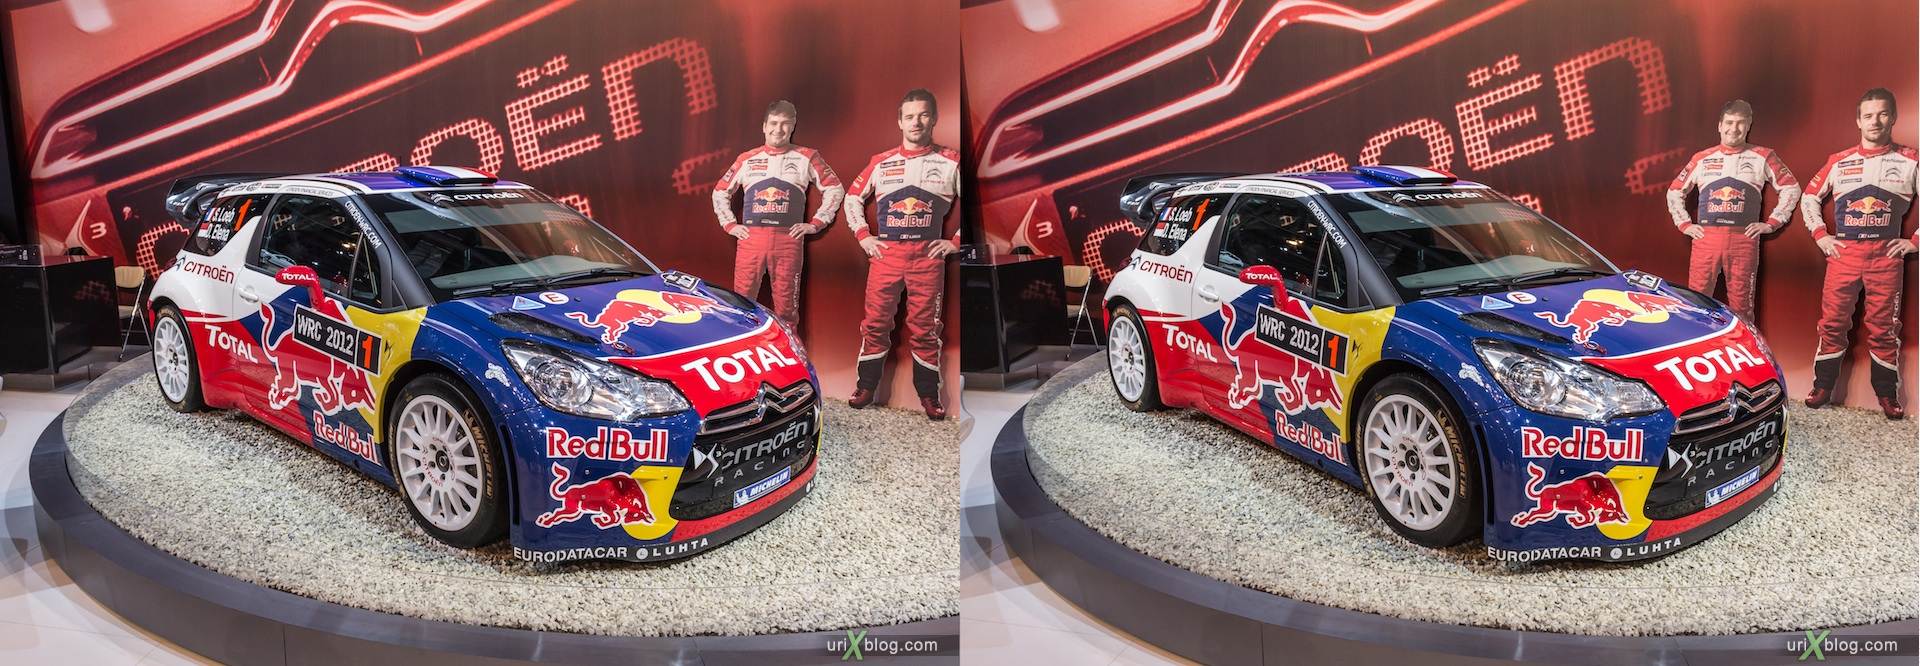 2012, Citroen Racing, Moscow International Automobile Salon, auto show, 3D, stereo pair, cross-eyed, crossview